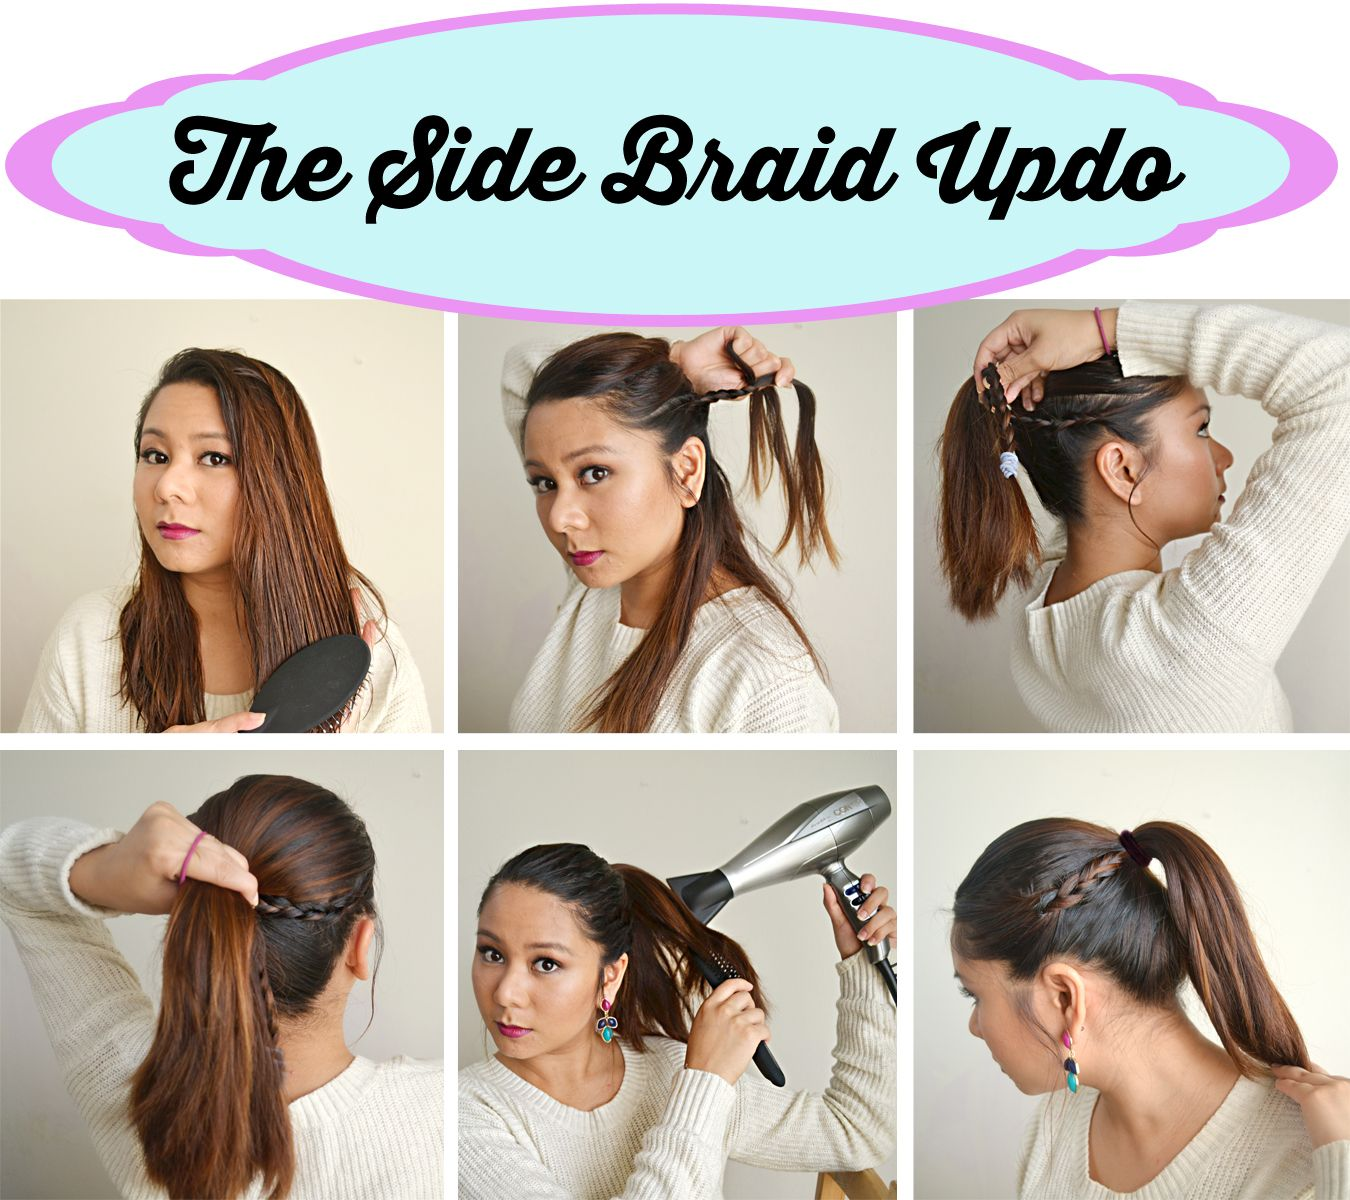 Denise says the side braid updo is perfect for a night out the